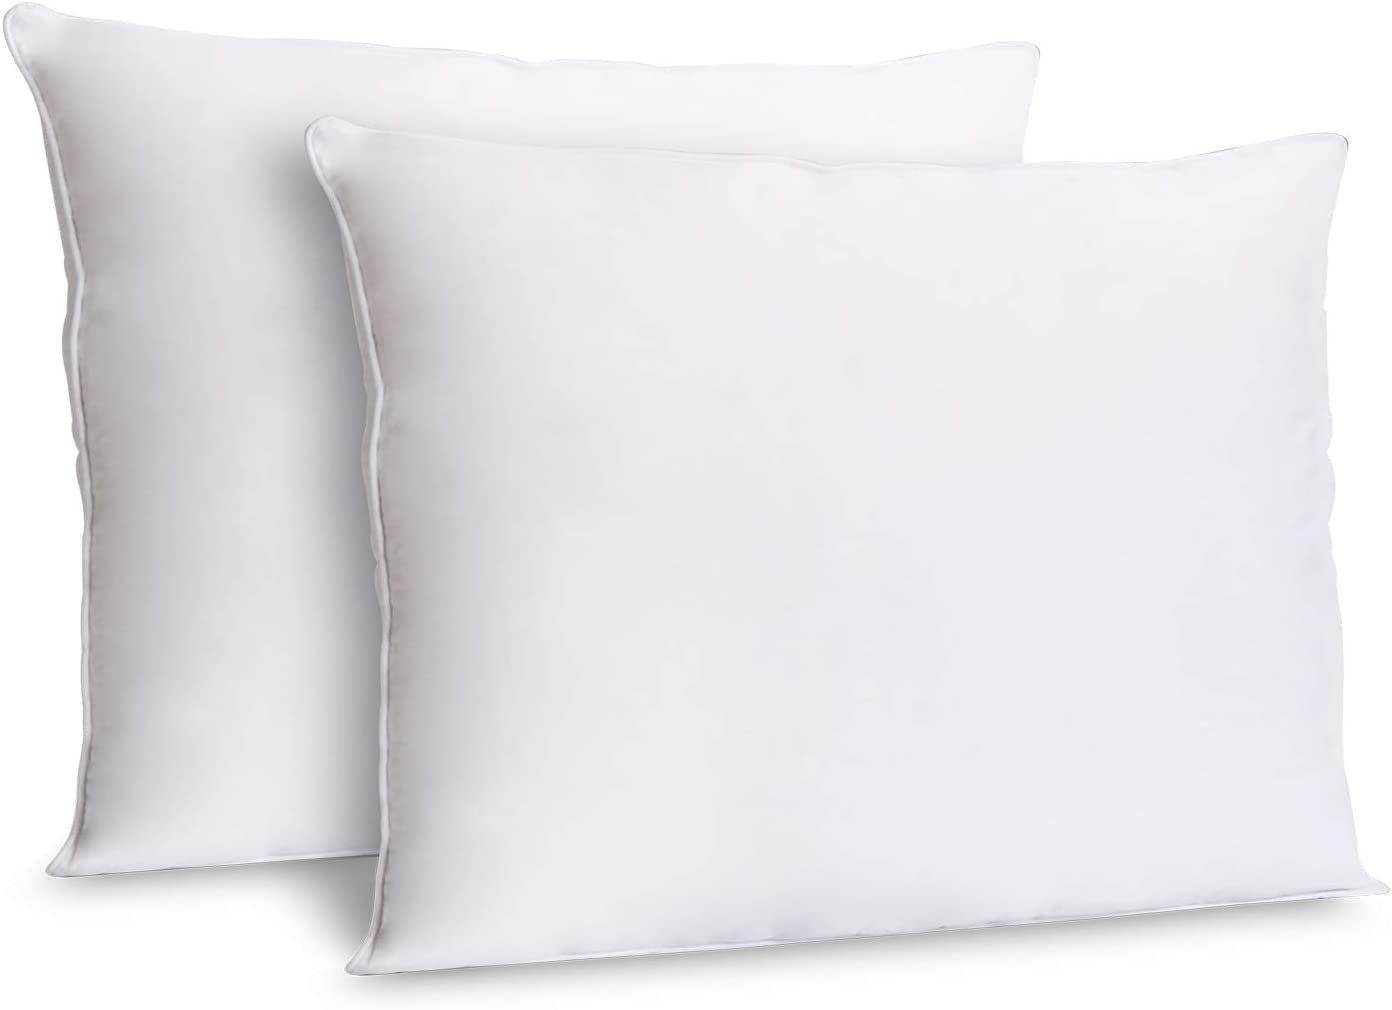 Amazon Com Zoyer Decorative Throw Pillow Inserts 2 Pack White Hypoallergenic Square Pillows Indoor Sofa Pillows Premium Quality Euro Pillows Decorative Pillow Cushion Sham Stiffer 12 X 20 Inch Kitchen Dining